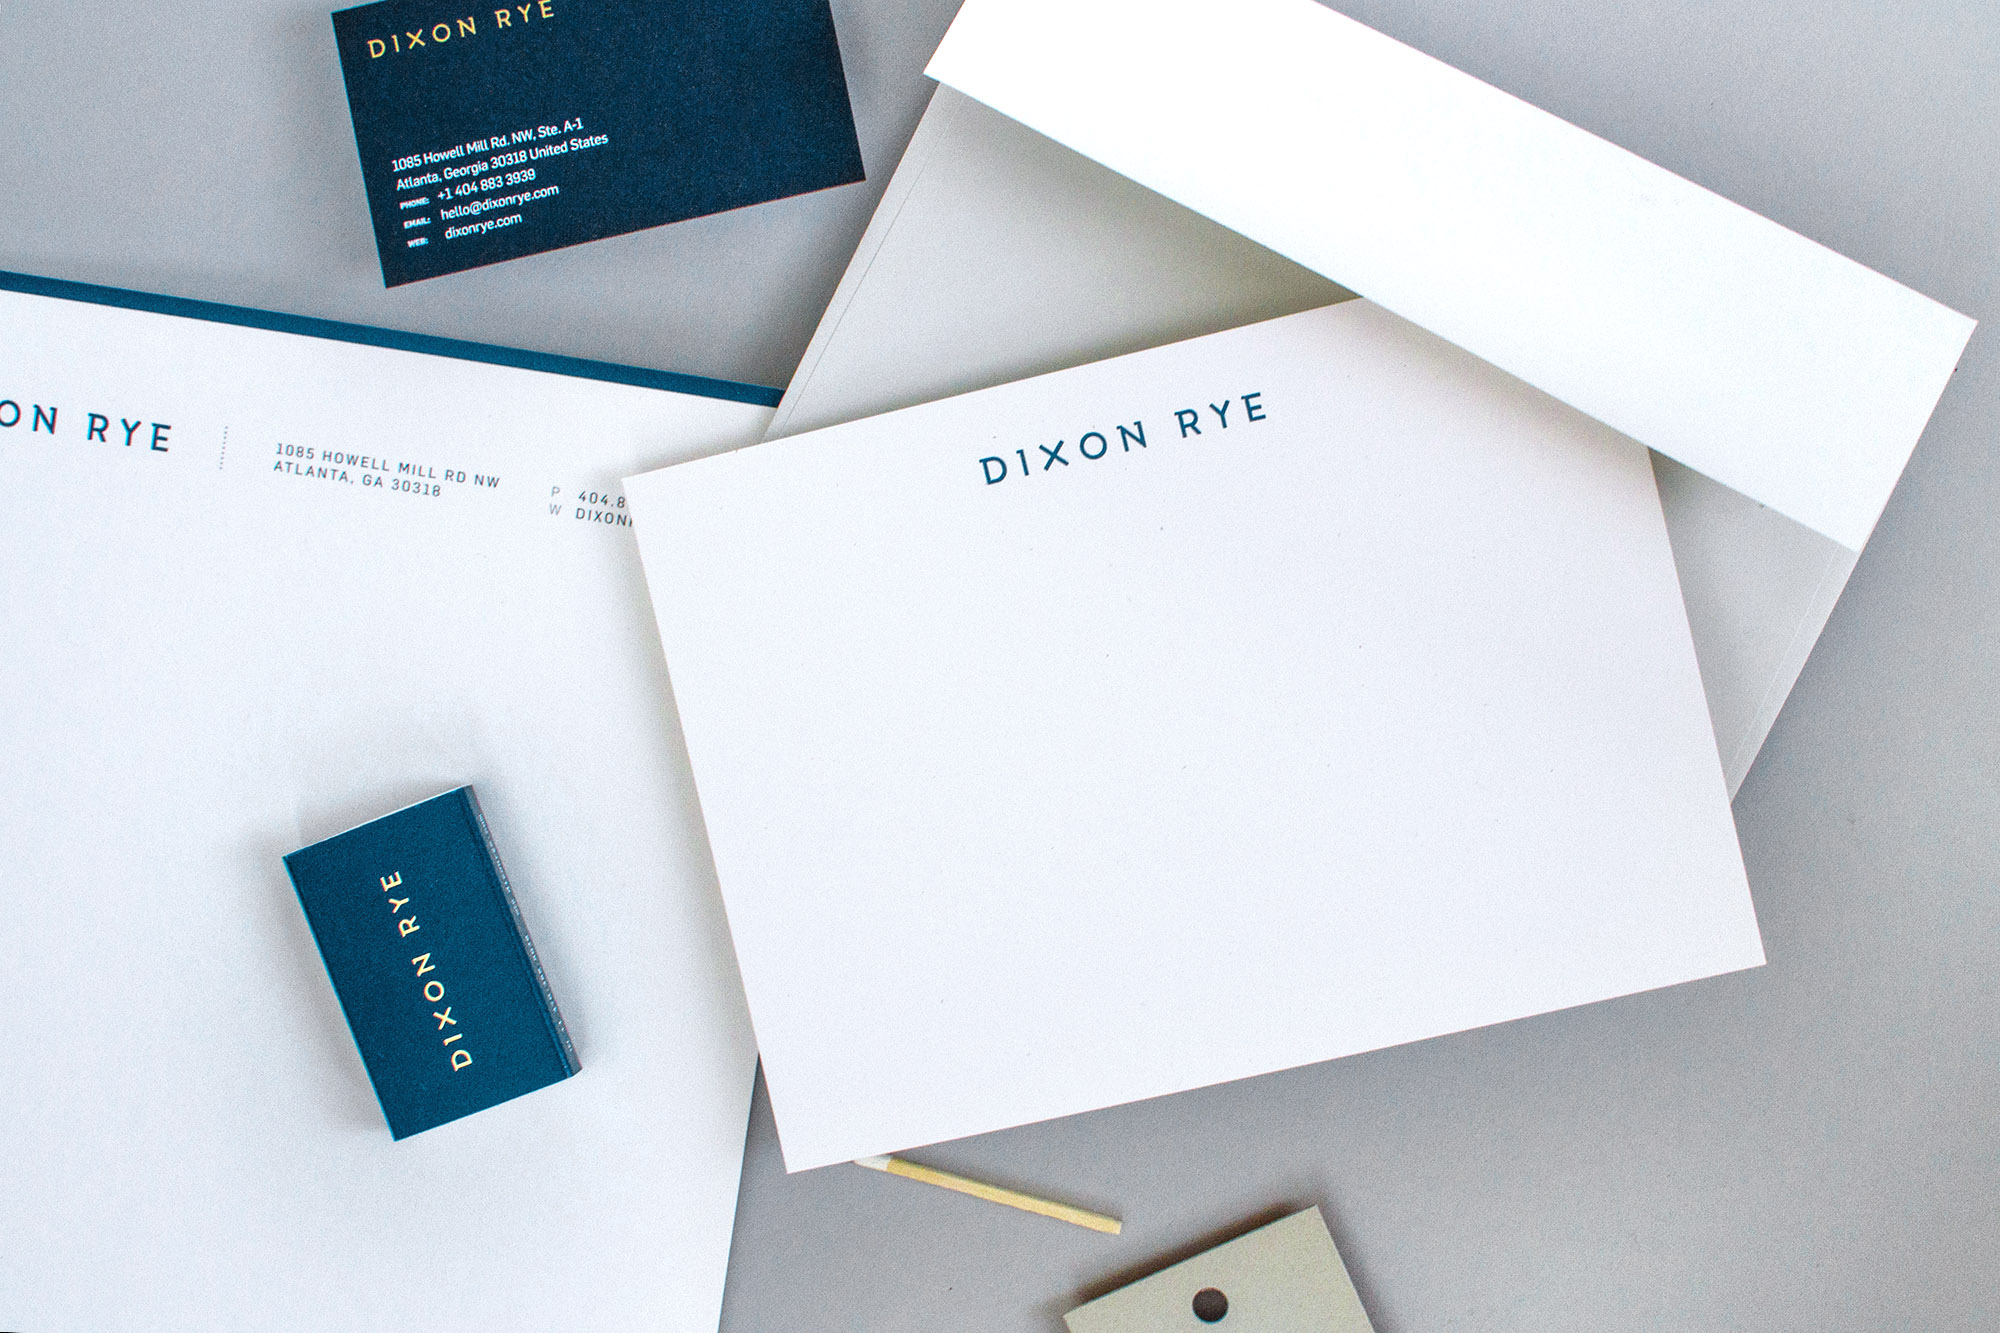 dixon-rye-stationery-matchbox-letterhead-notecard-business-card